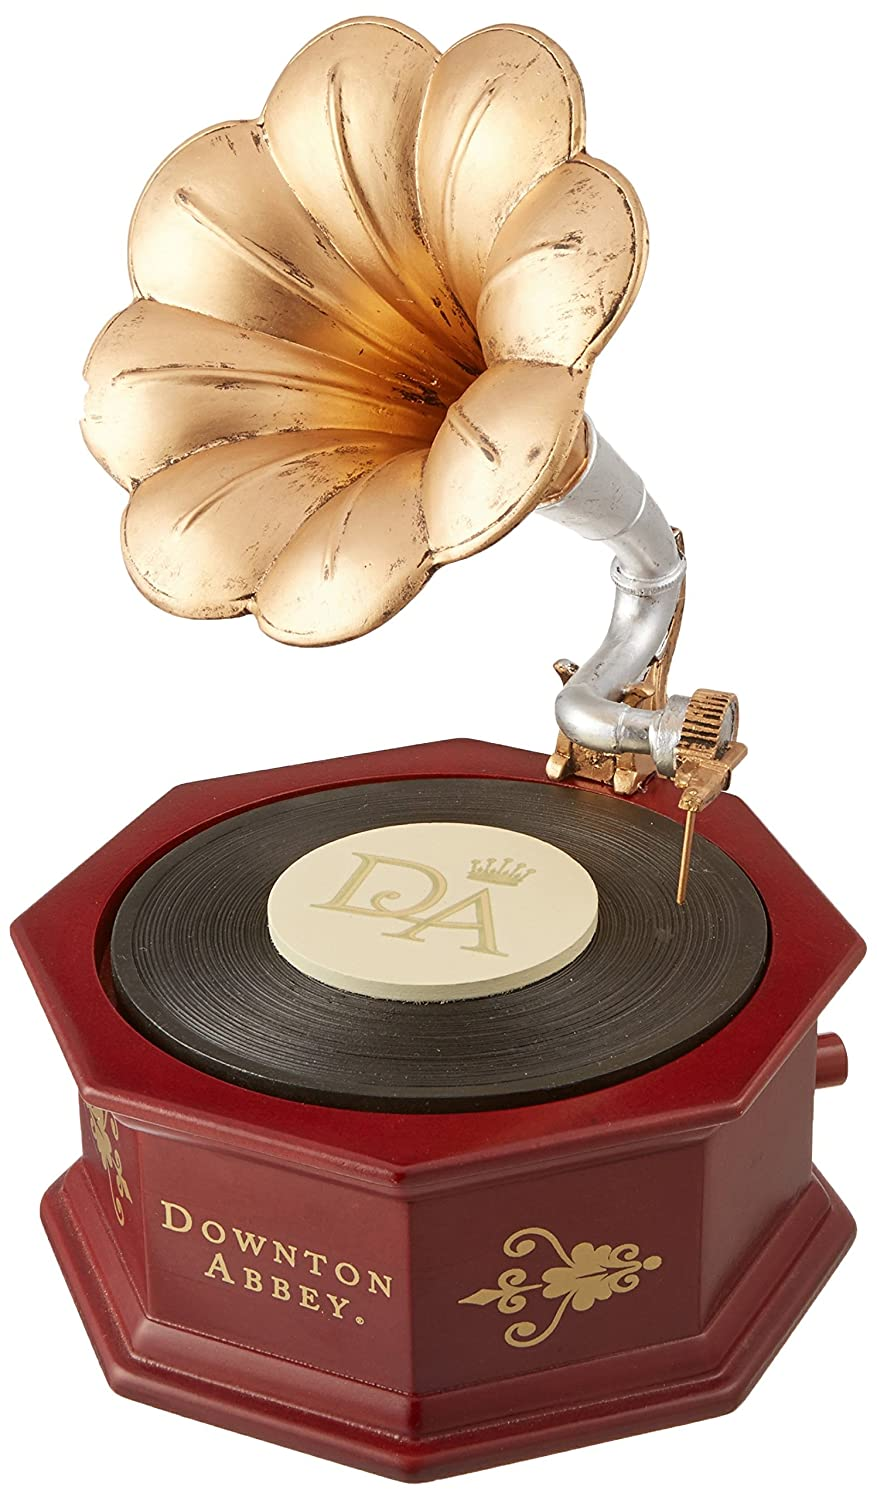 驚きの値段で Downton Abbey Animated Abbey Musical Music Spinning Record Record Box Musical Phonograph, 20cm B00V3LQMF2, 工房八王子ジュールドロワ:ef72f5e1 --- arcego.dominiotemporario.com